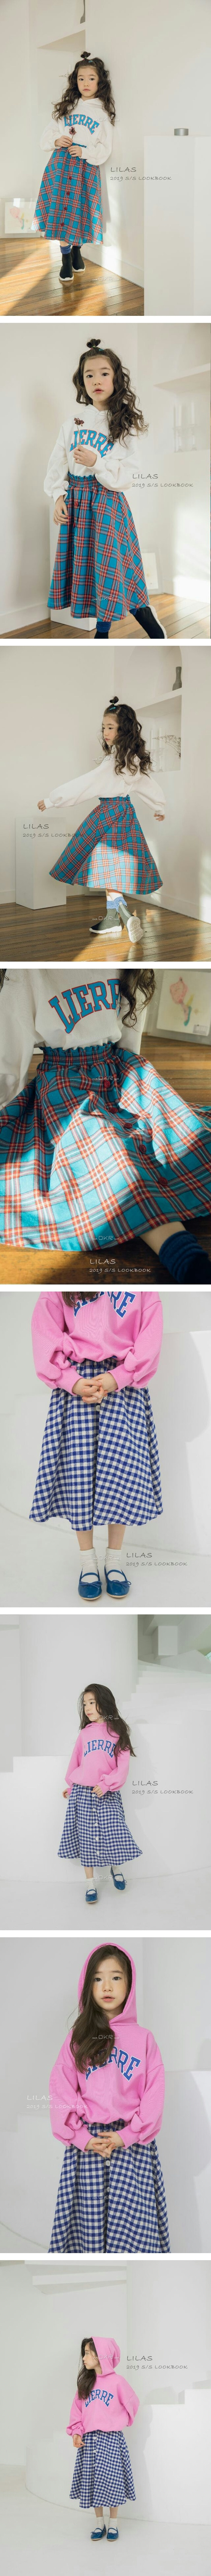 LILAS - Korean Children Fashion - #Kfashion4kids - Cherry Skirts